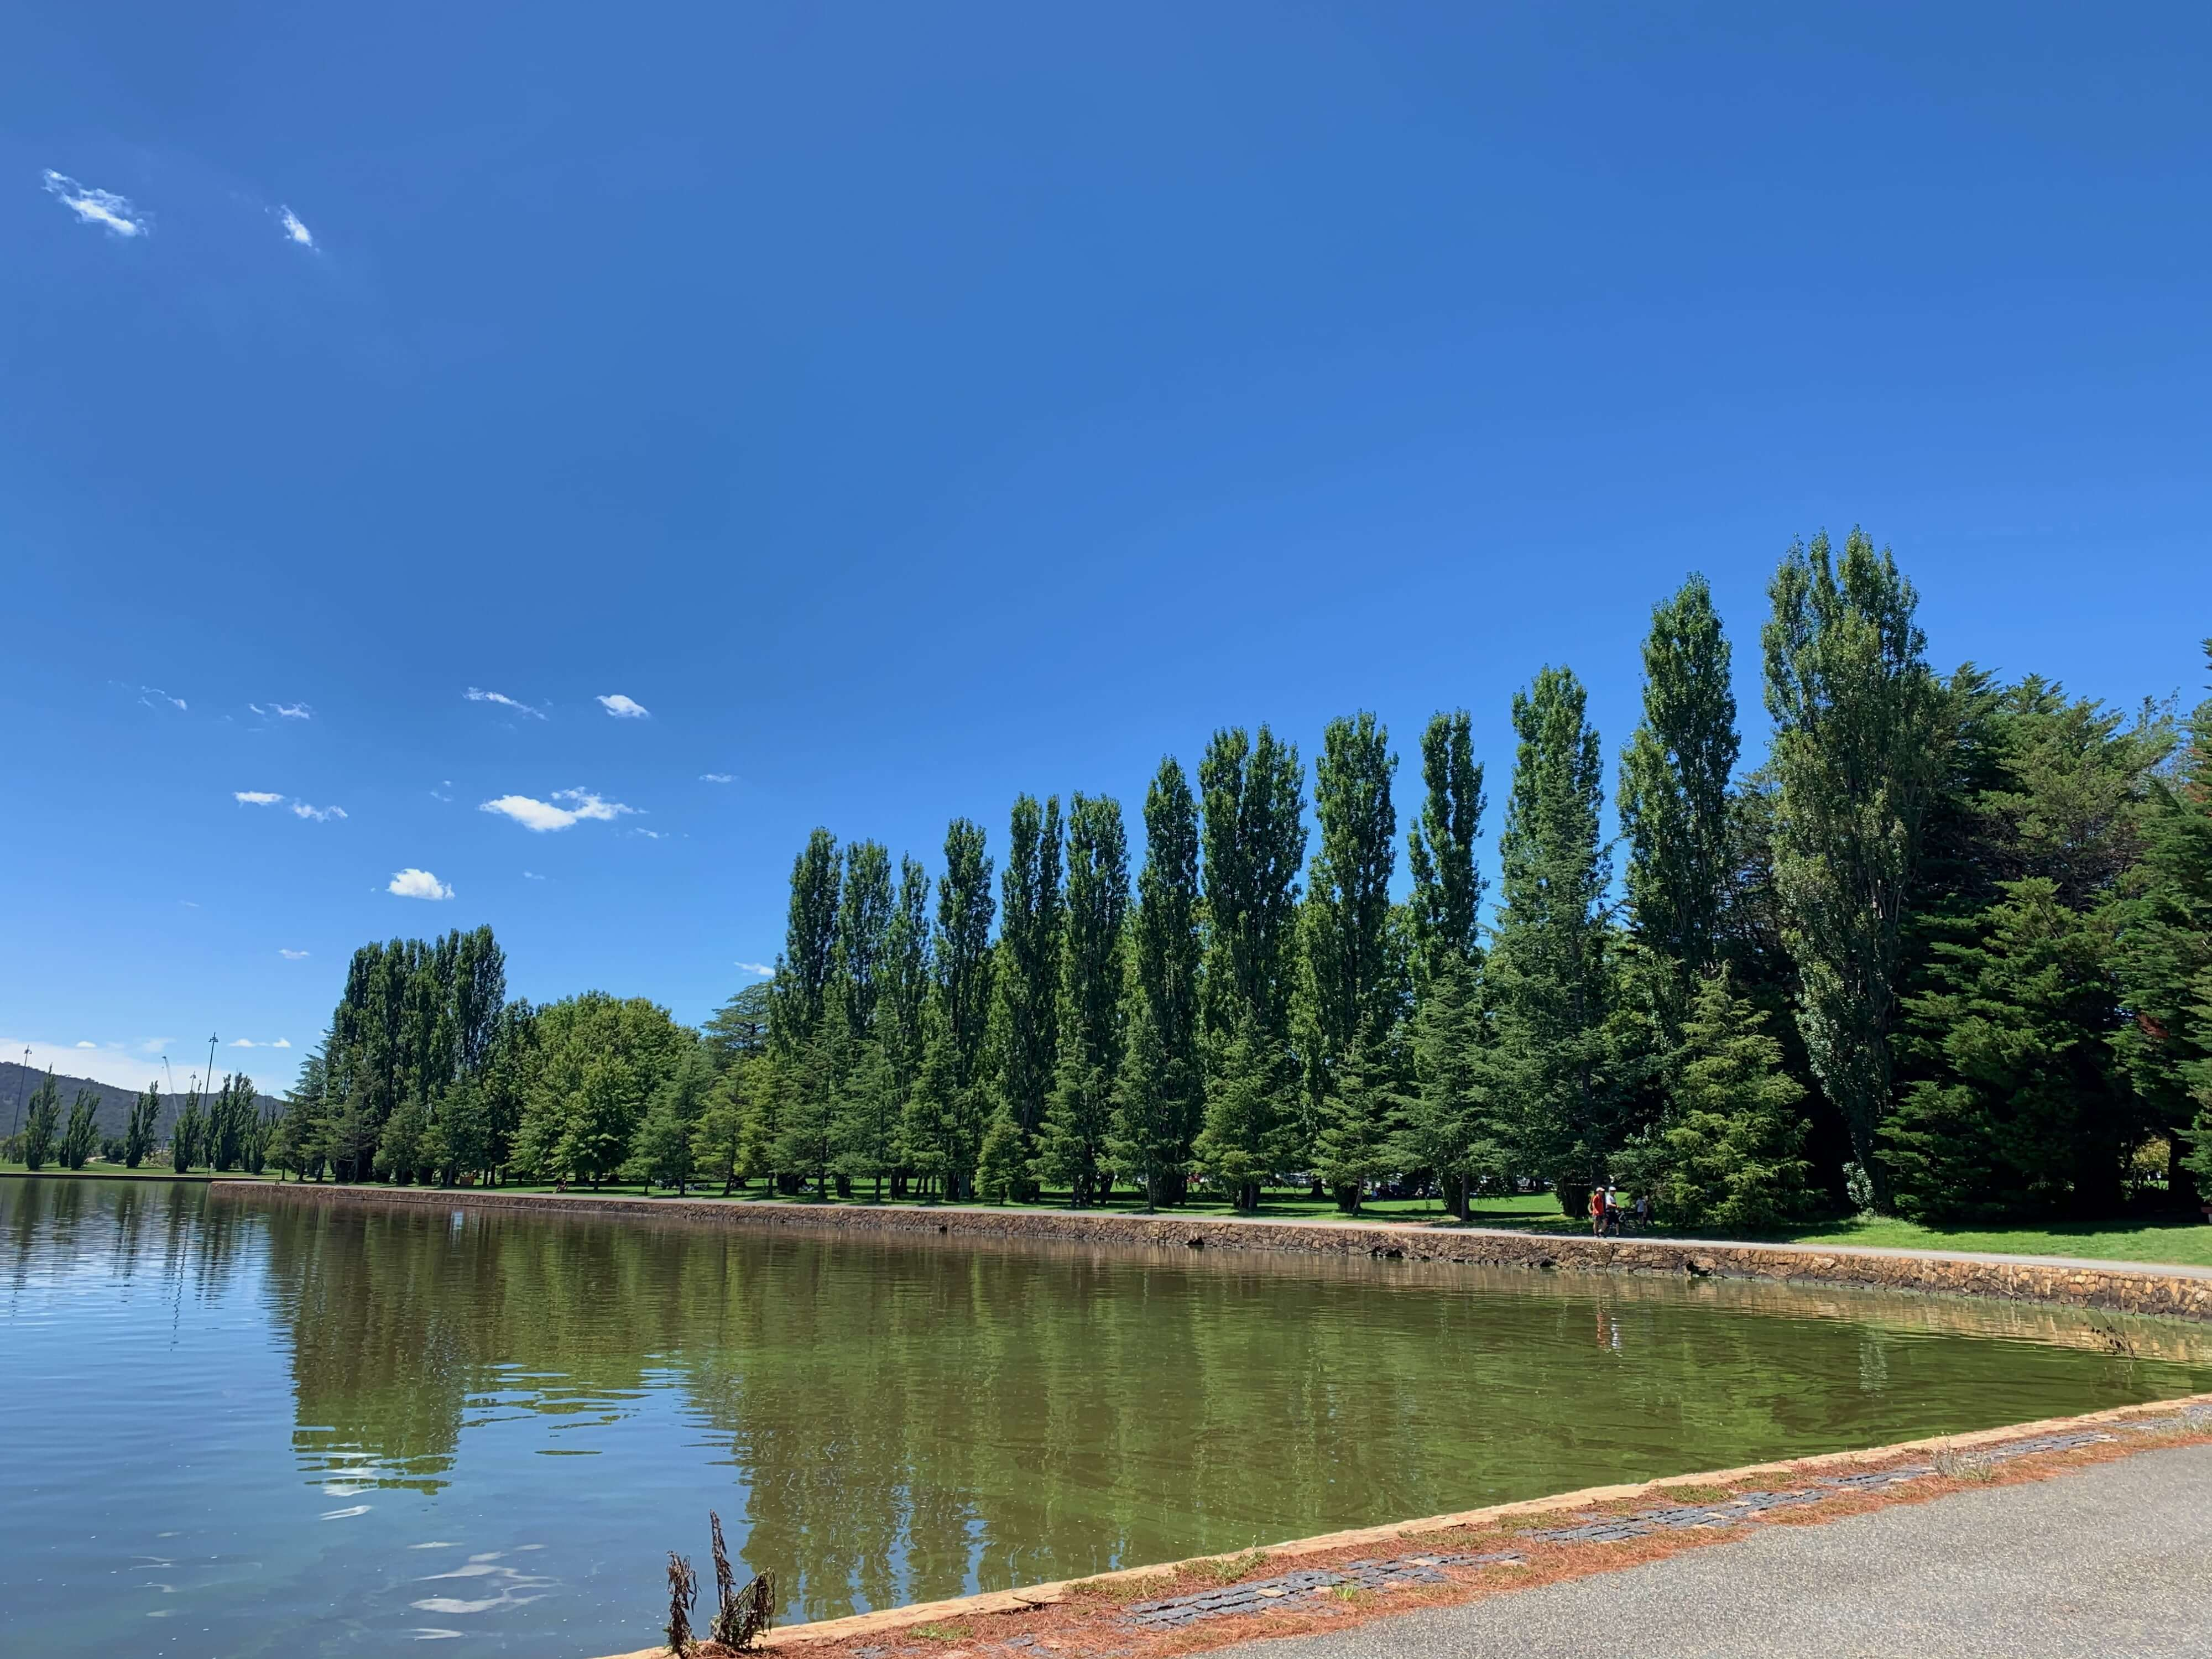 Trees lining the lakefront, Canberra